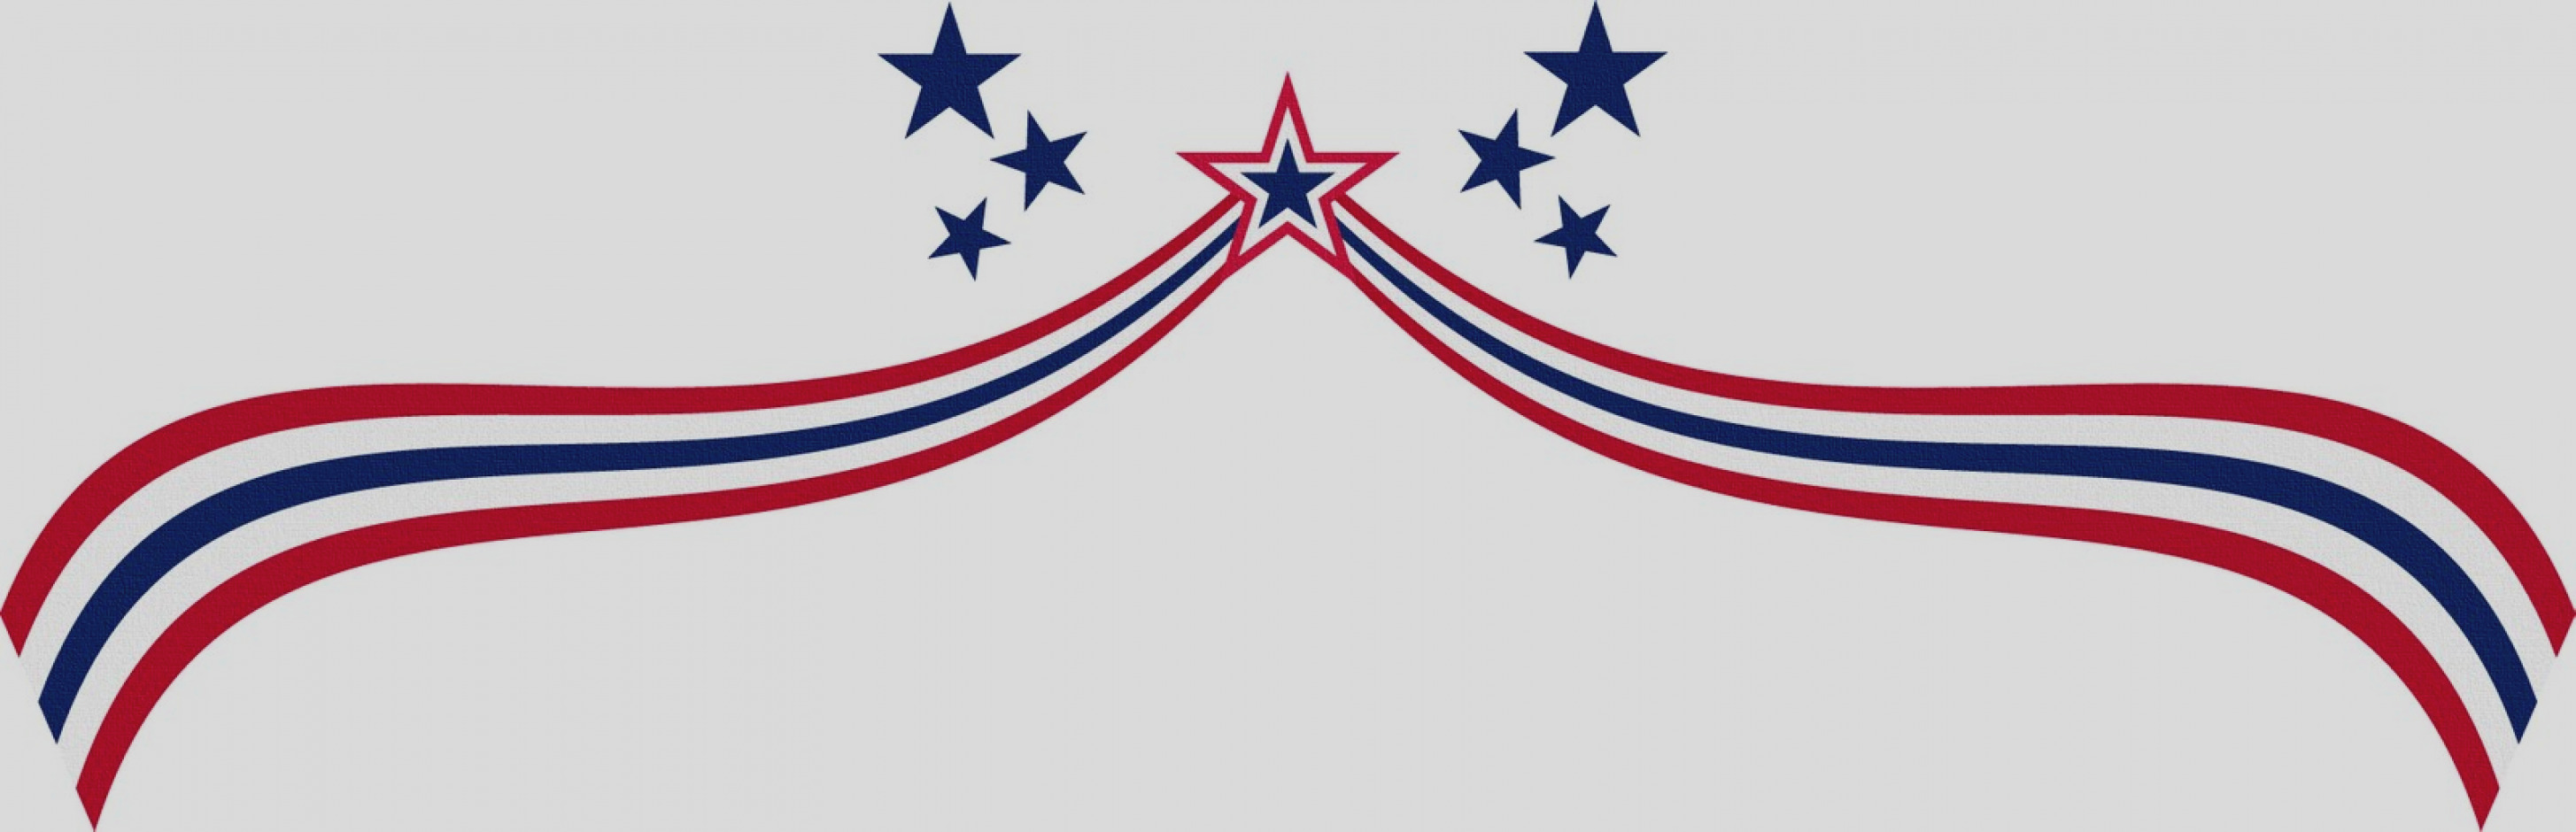 2909x940 Pictures 4th Of July Clip Art Fourth 4 2014 Jpg